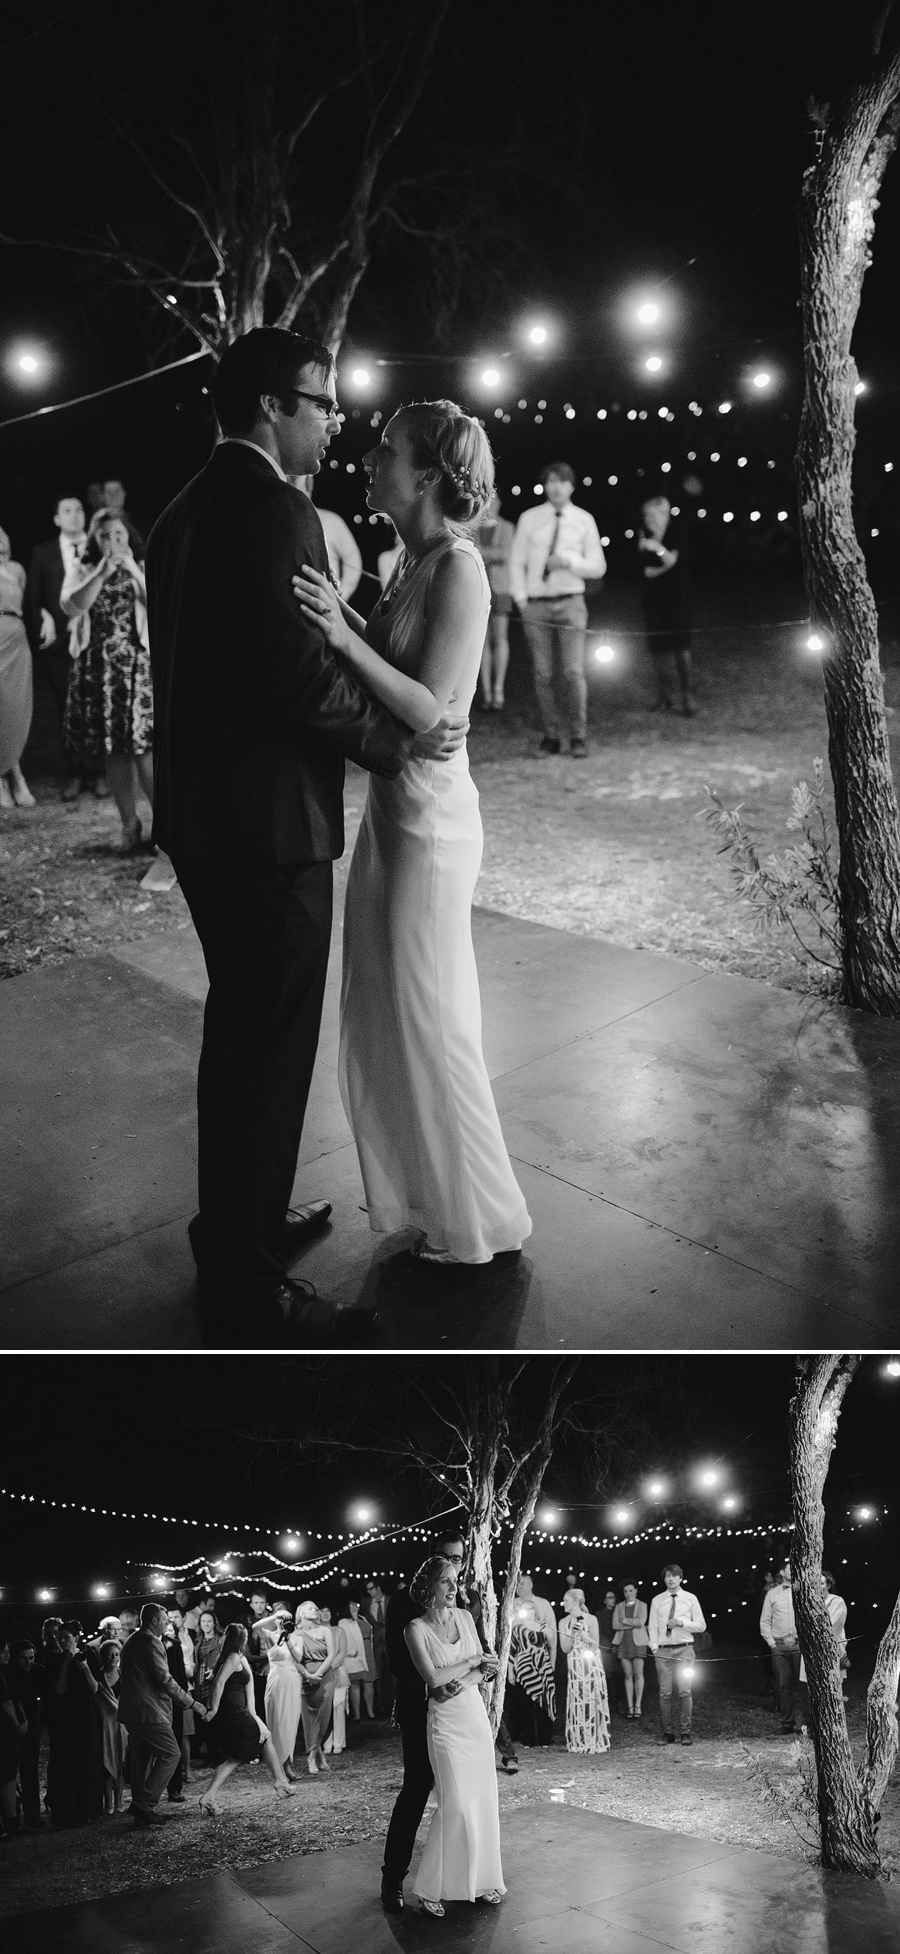 Country Wedding Photography: Dancefloor